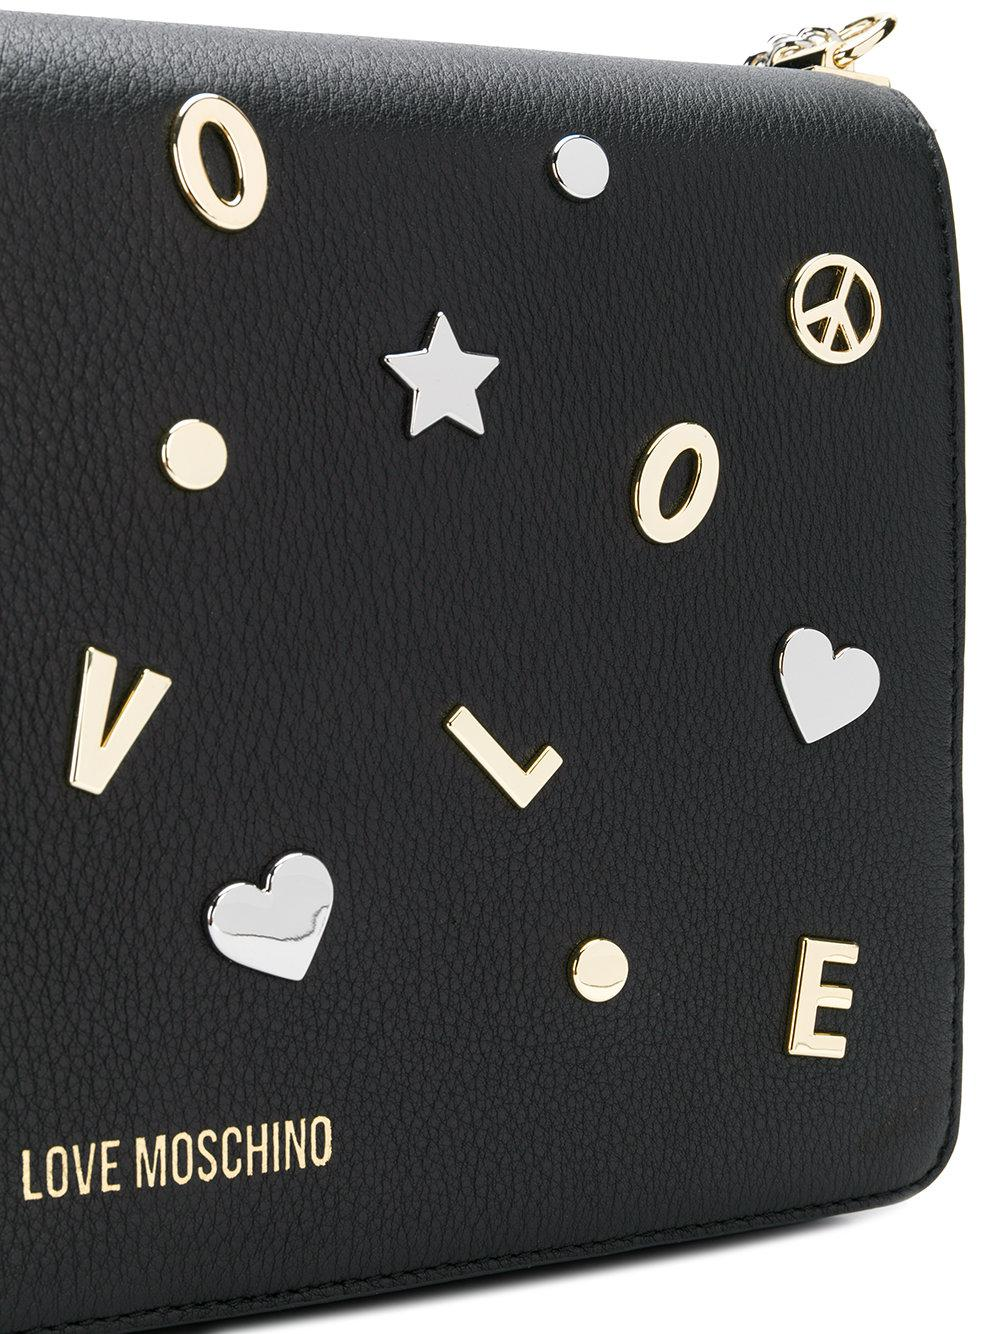 Love Moschino Leather Embellished Crossbody Bag in Black